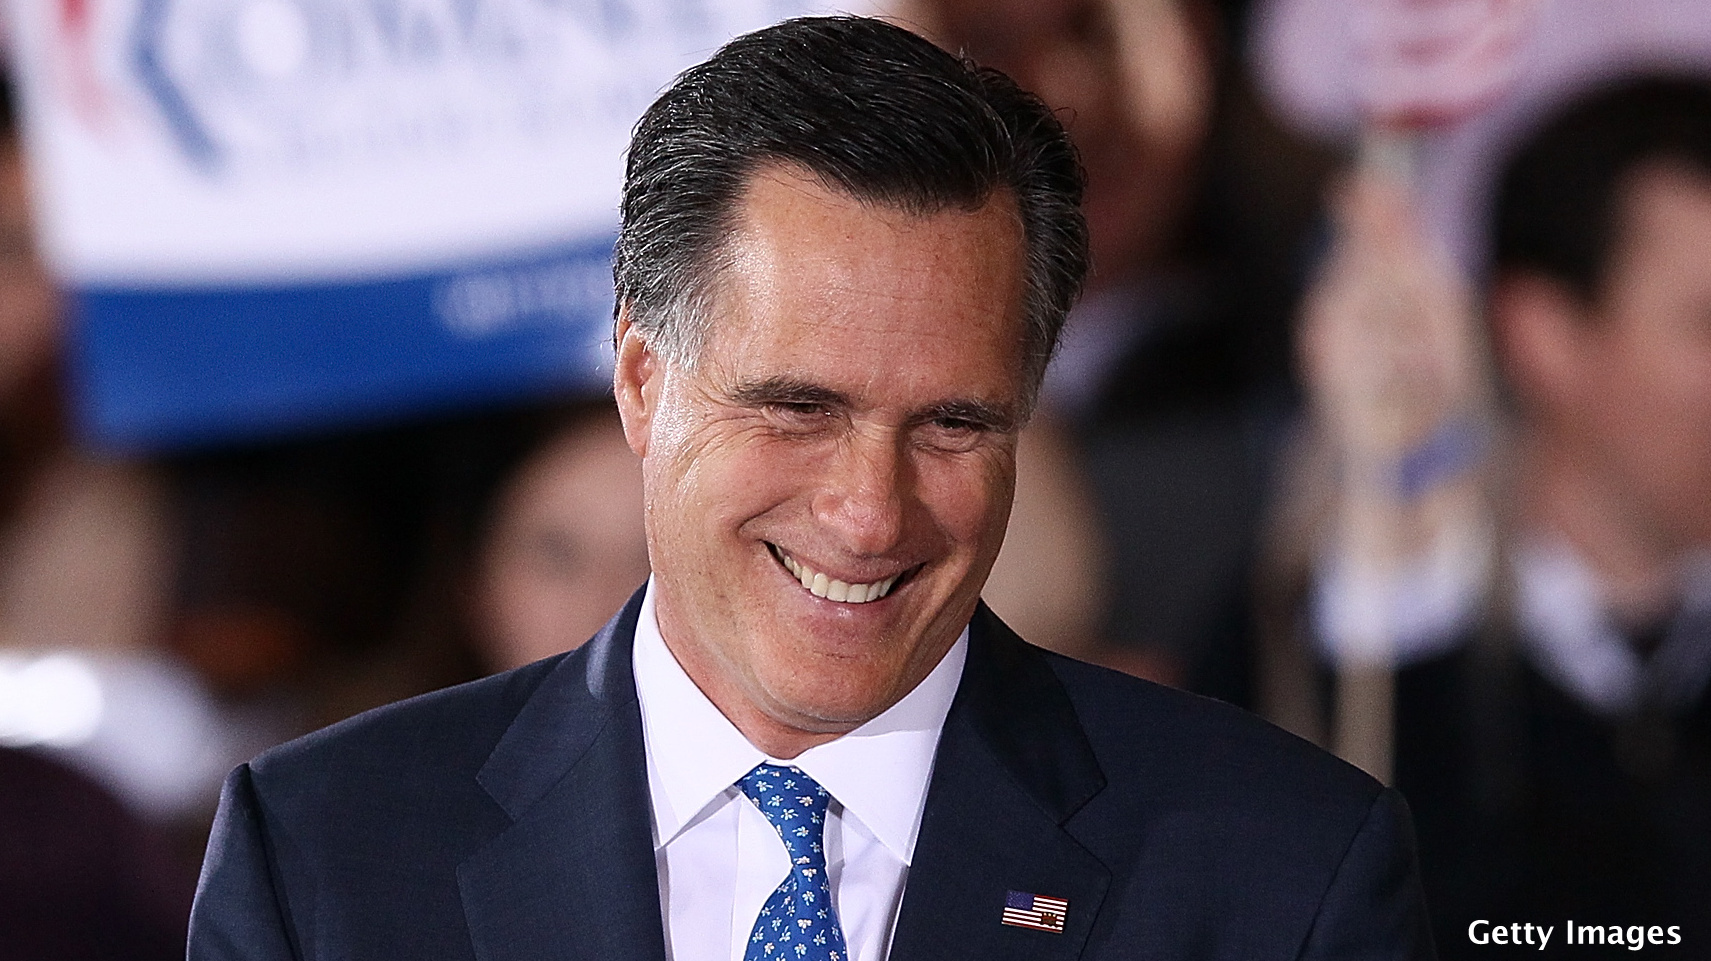 Romney plans to campaign with Santorum